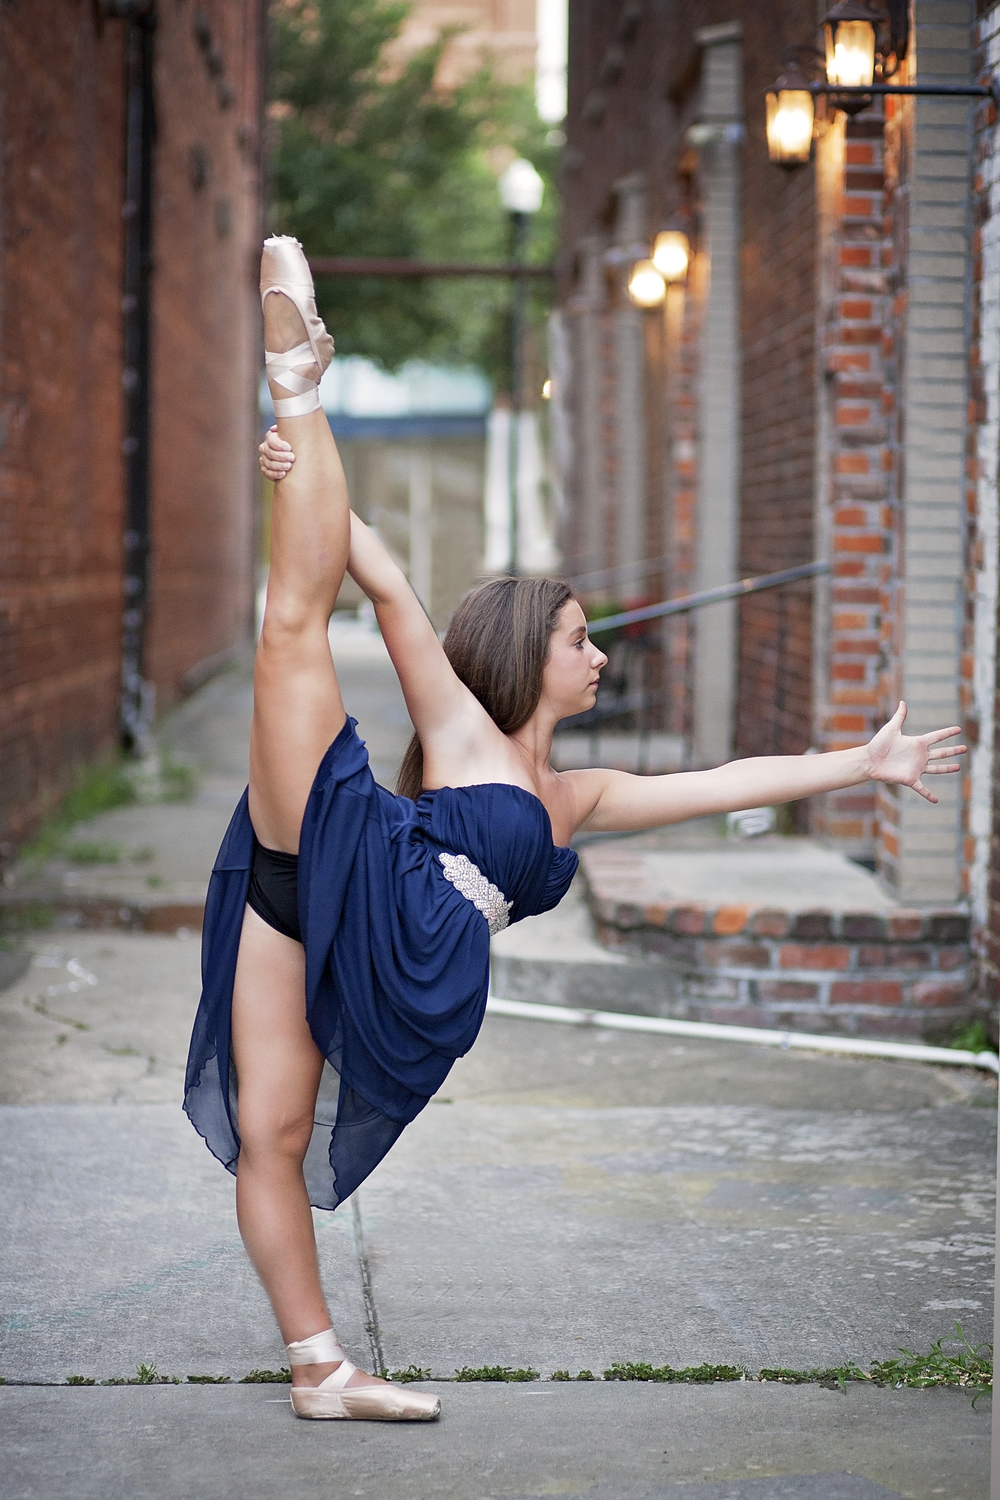 ballet dance photography seneca sc